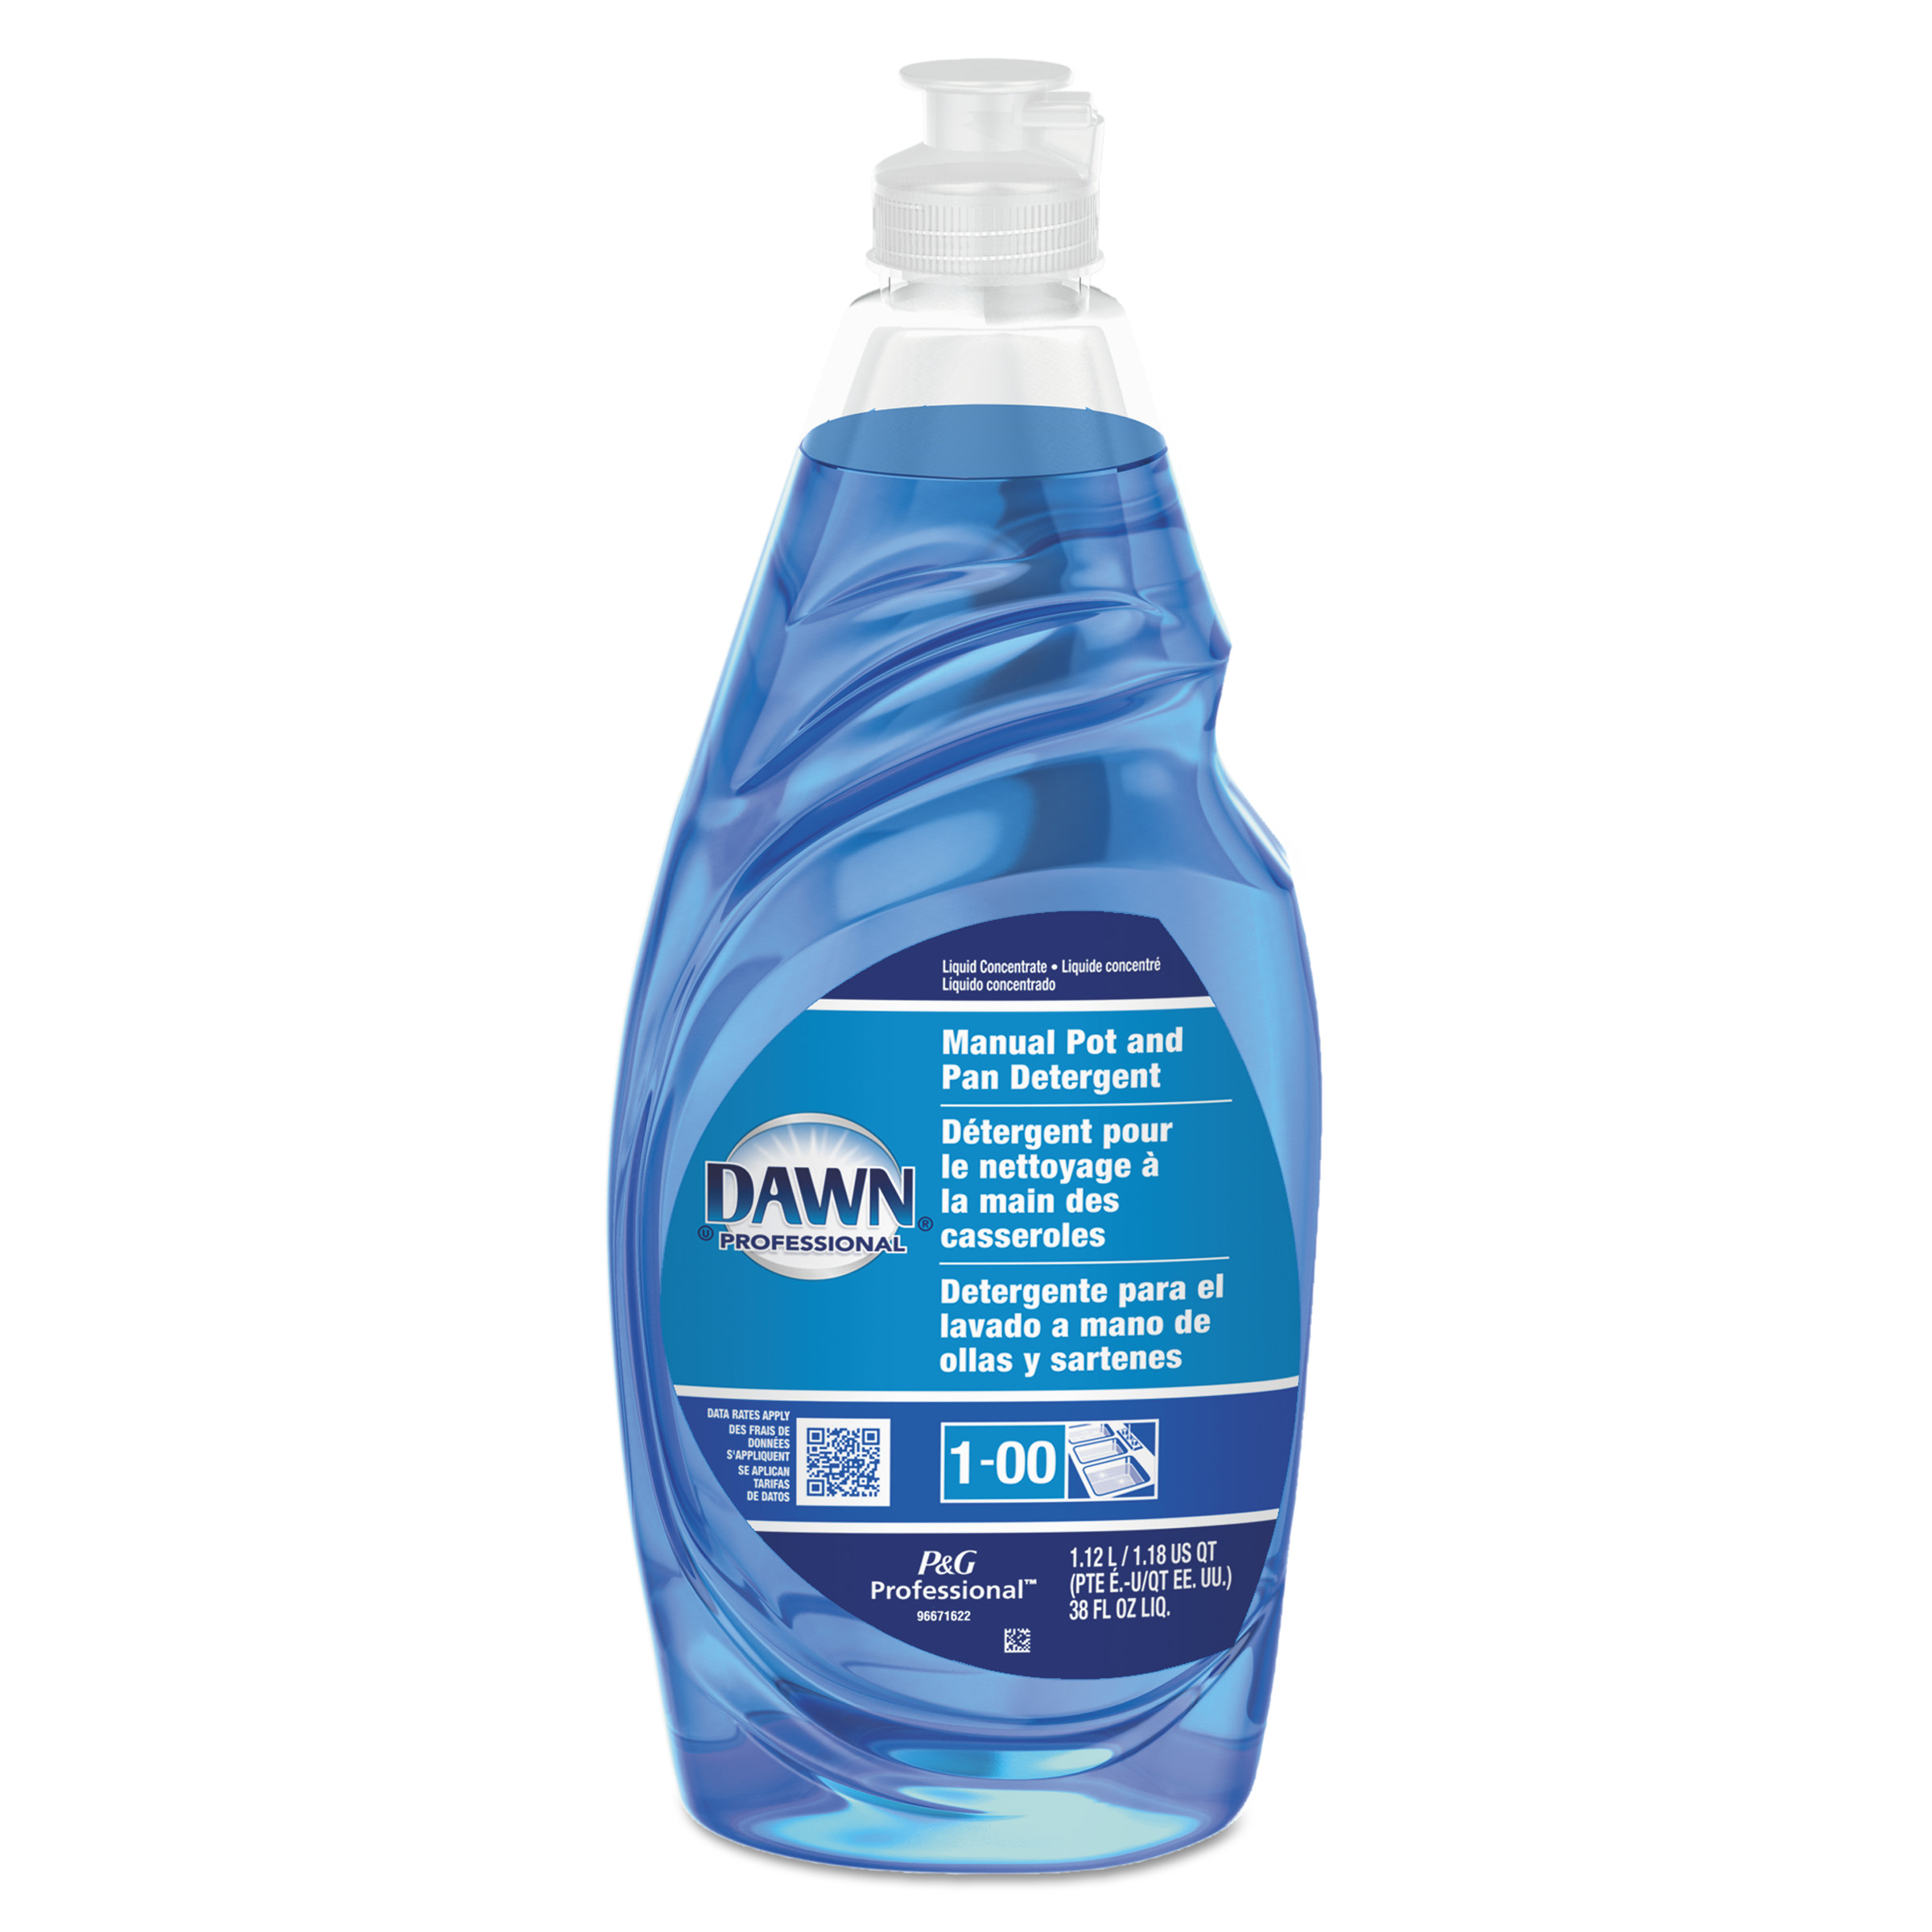 Dawn Professional Manual Pot & Pan Dish Detergent, 38 oz Bottle